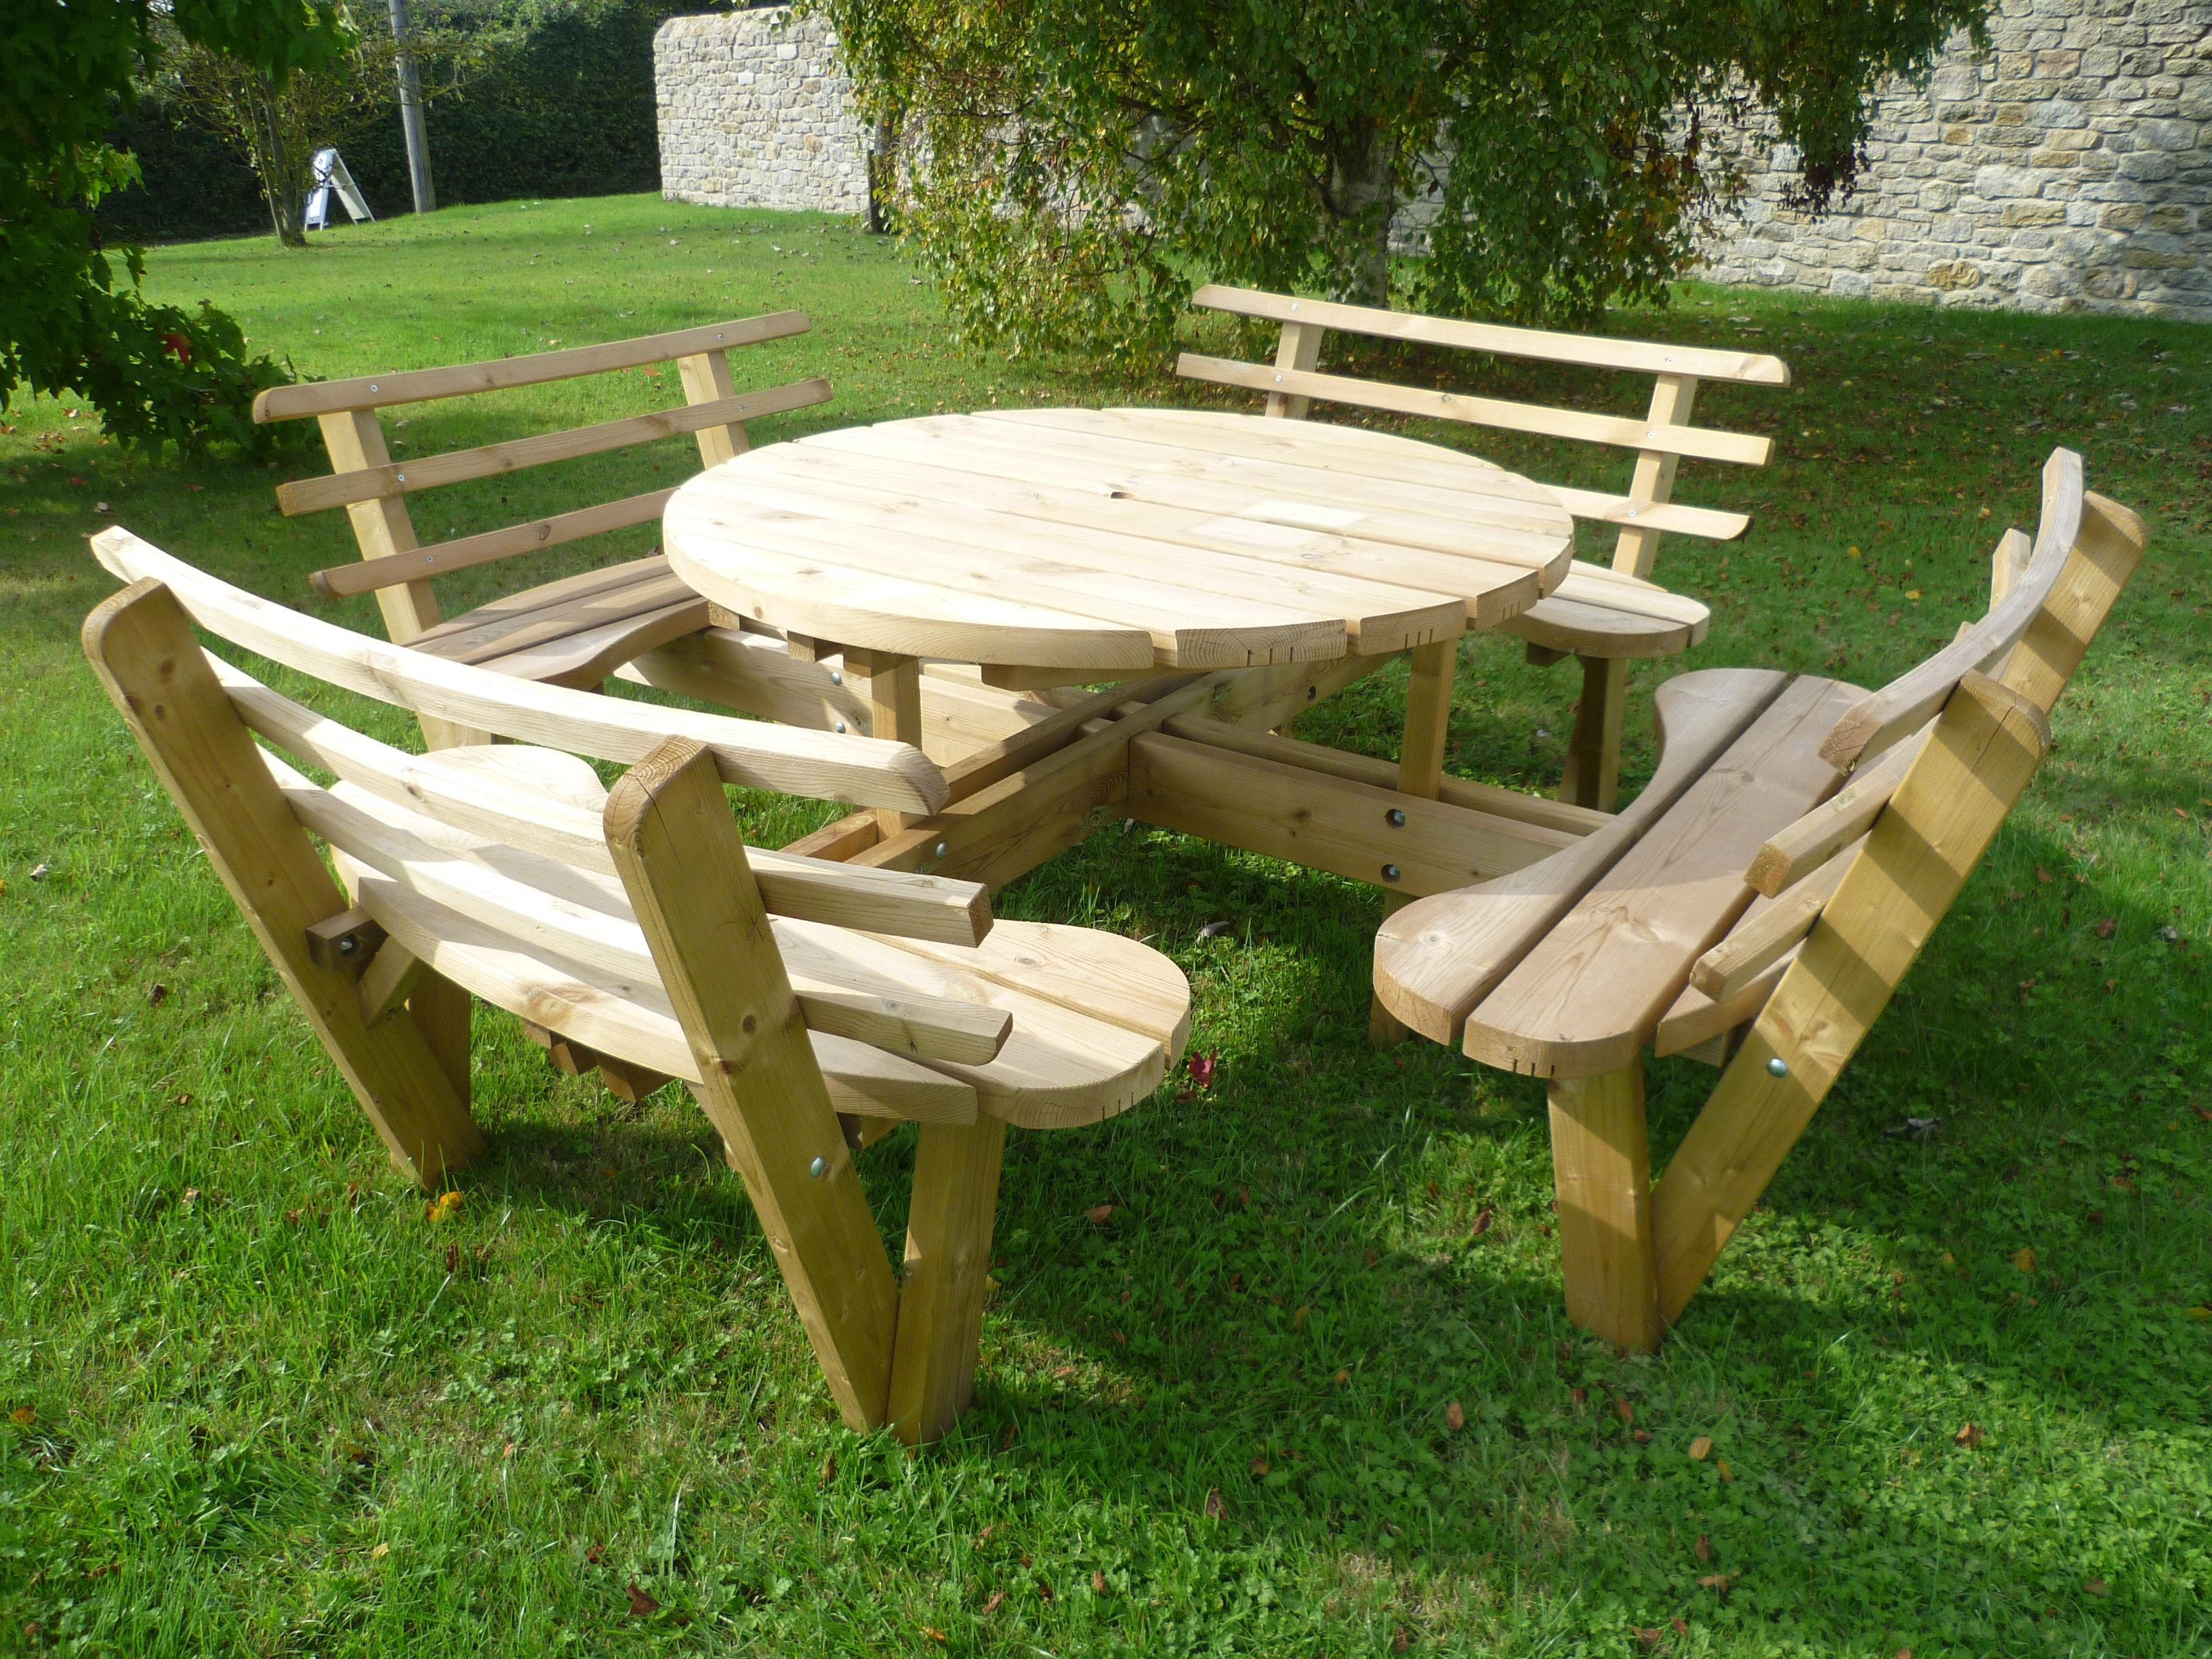 Round Wooden Picnic Table With Seat Backs Wooden Picnic Tables